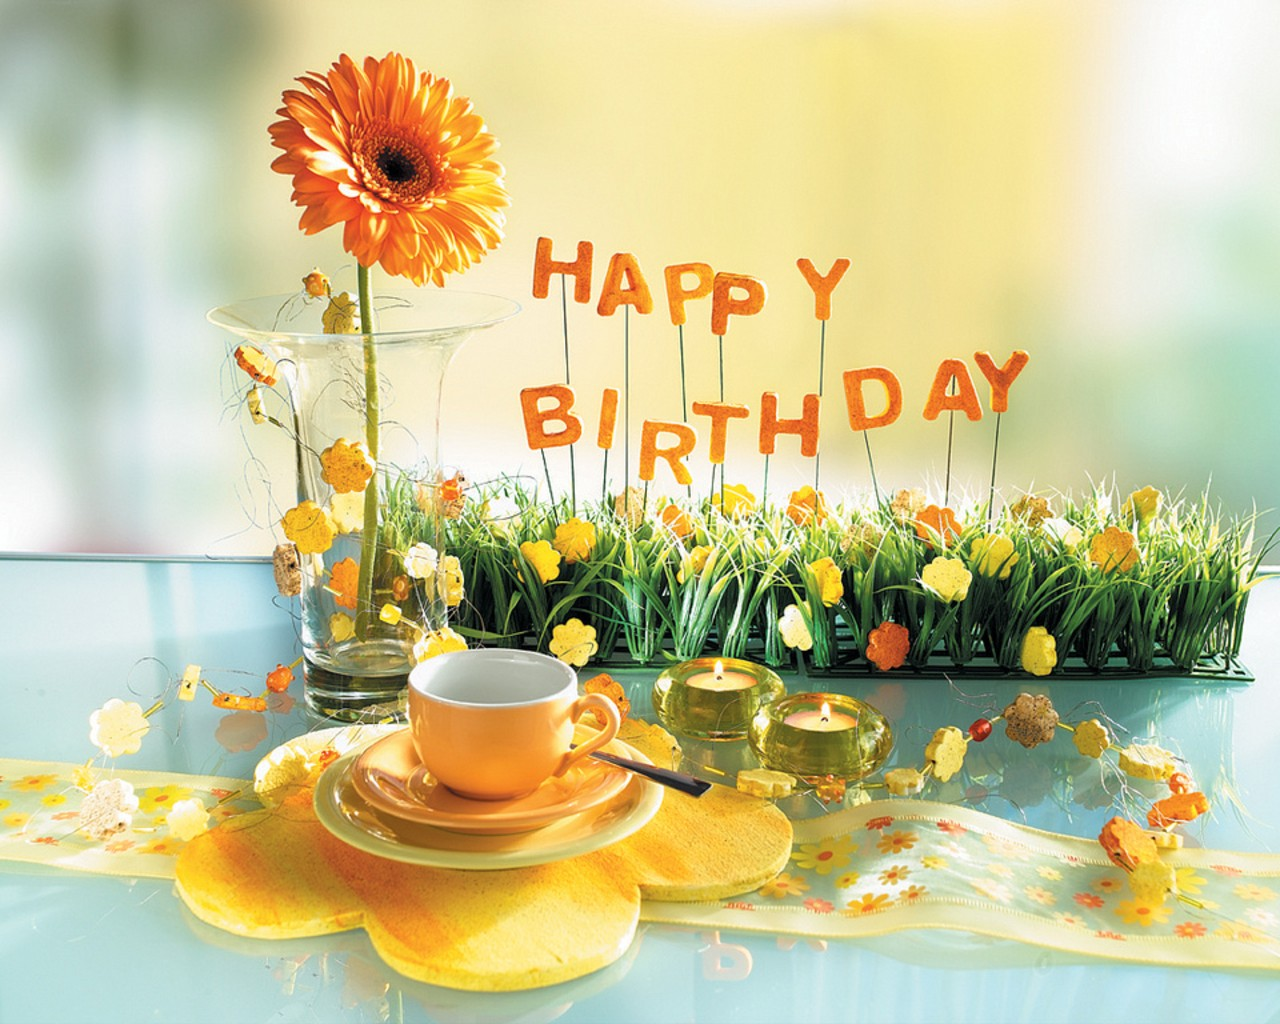 13 Happy Birthday HD Wallpapers Backgrounds HQ Wallpapers 1280x1024